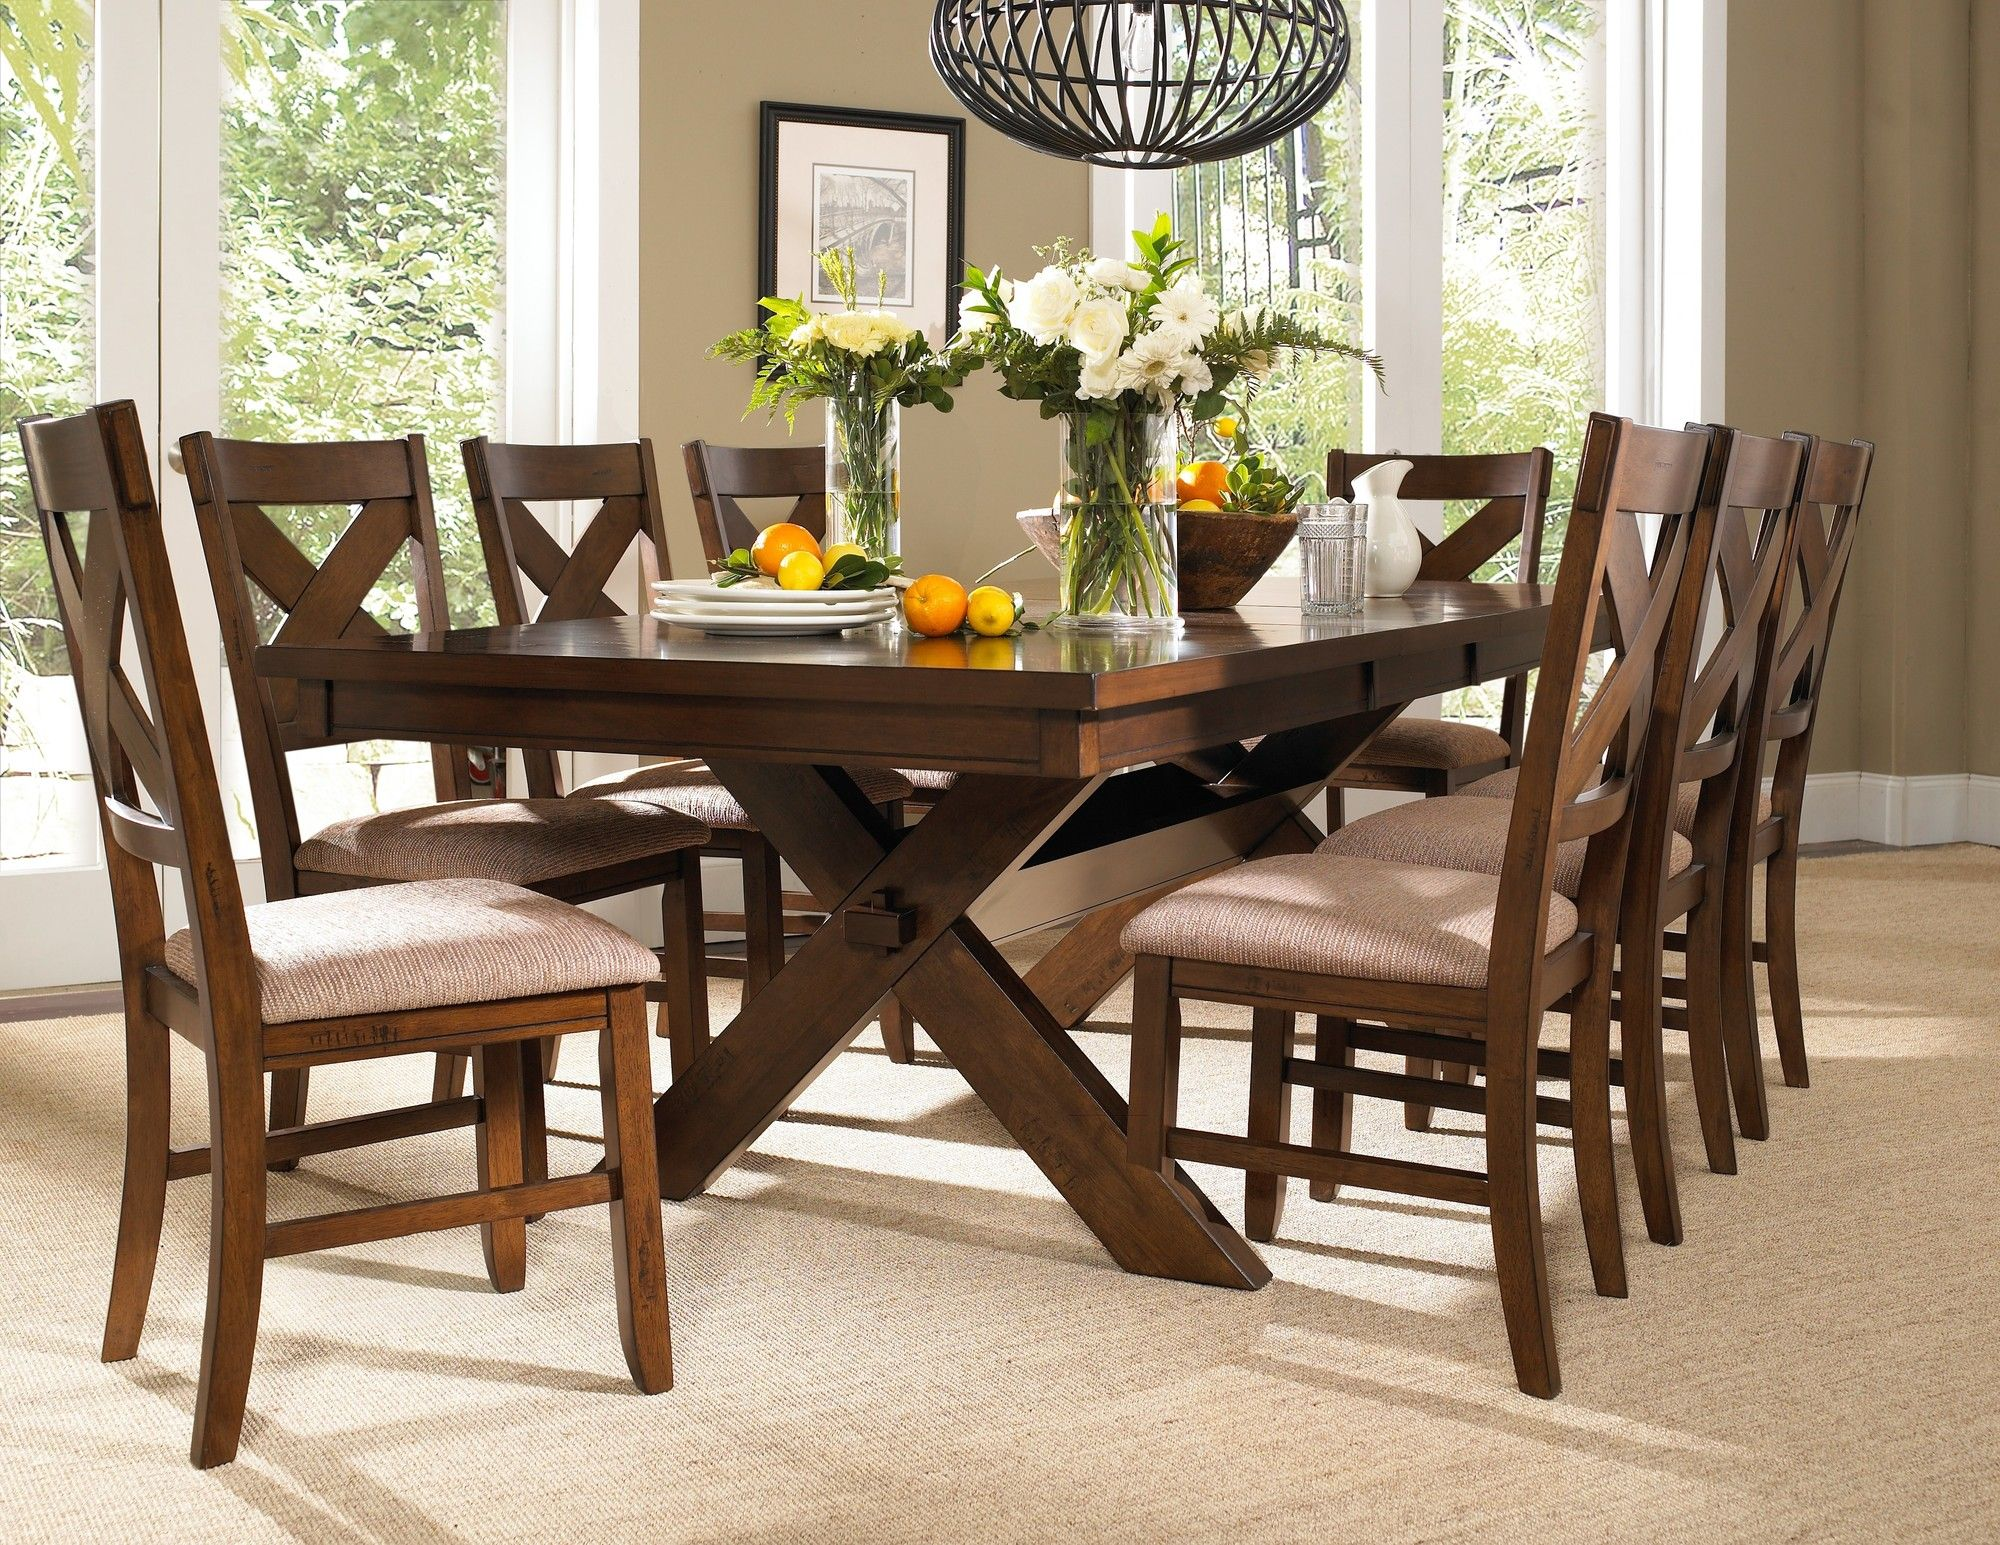 You'll Love The 9Piece Weir Dining Set At Joss & Main  With Prepossessing 9 Pc Dining Room Sets 2018